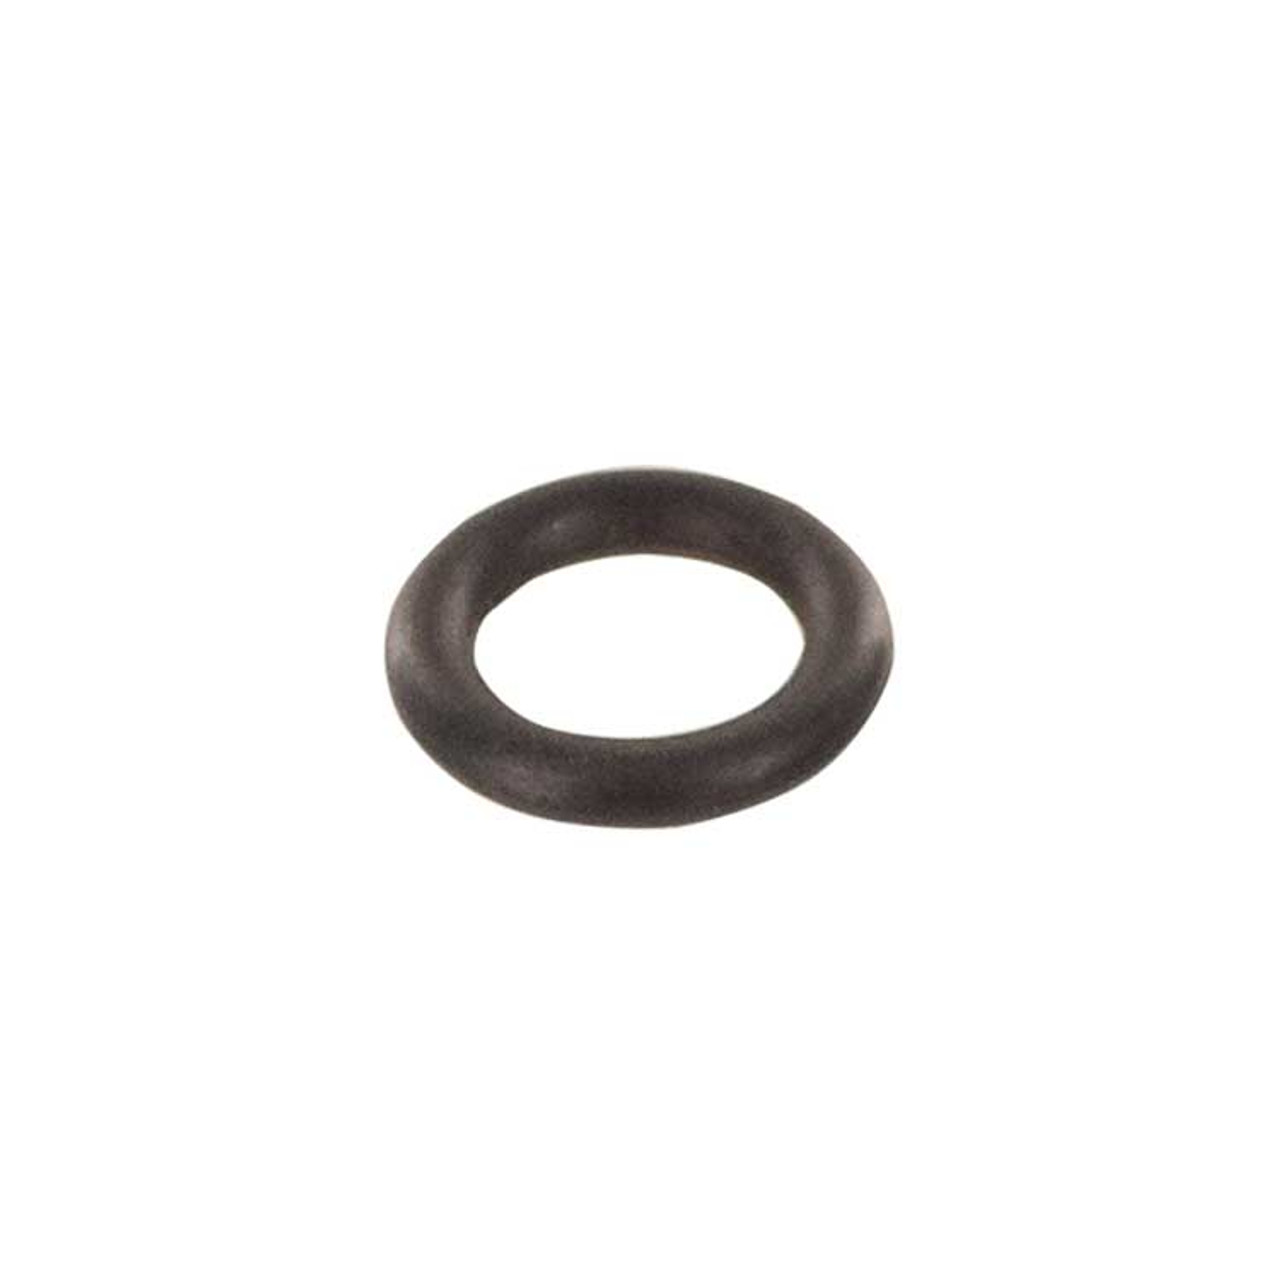 Hypertherm 058519 O-Ring